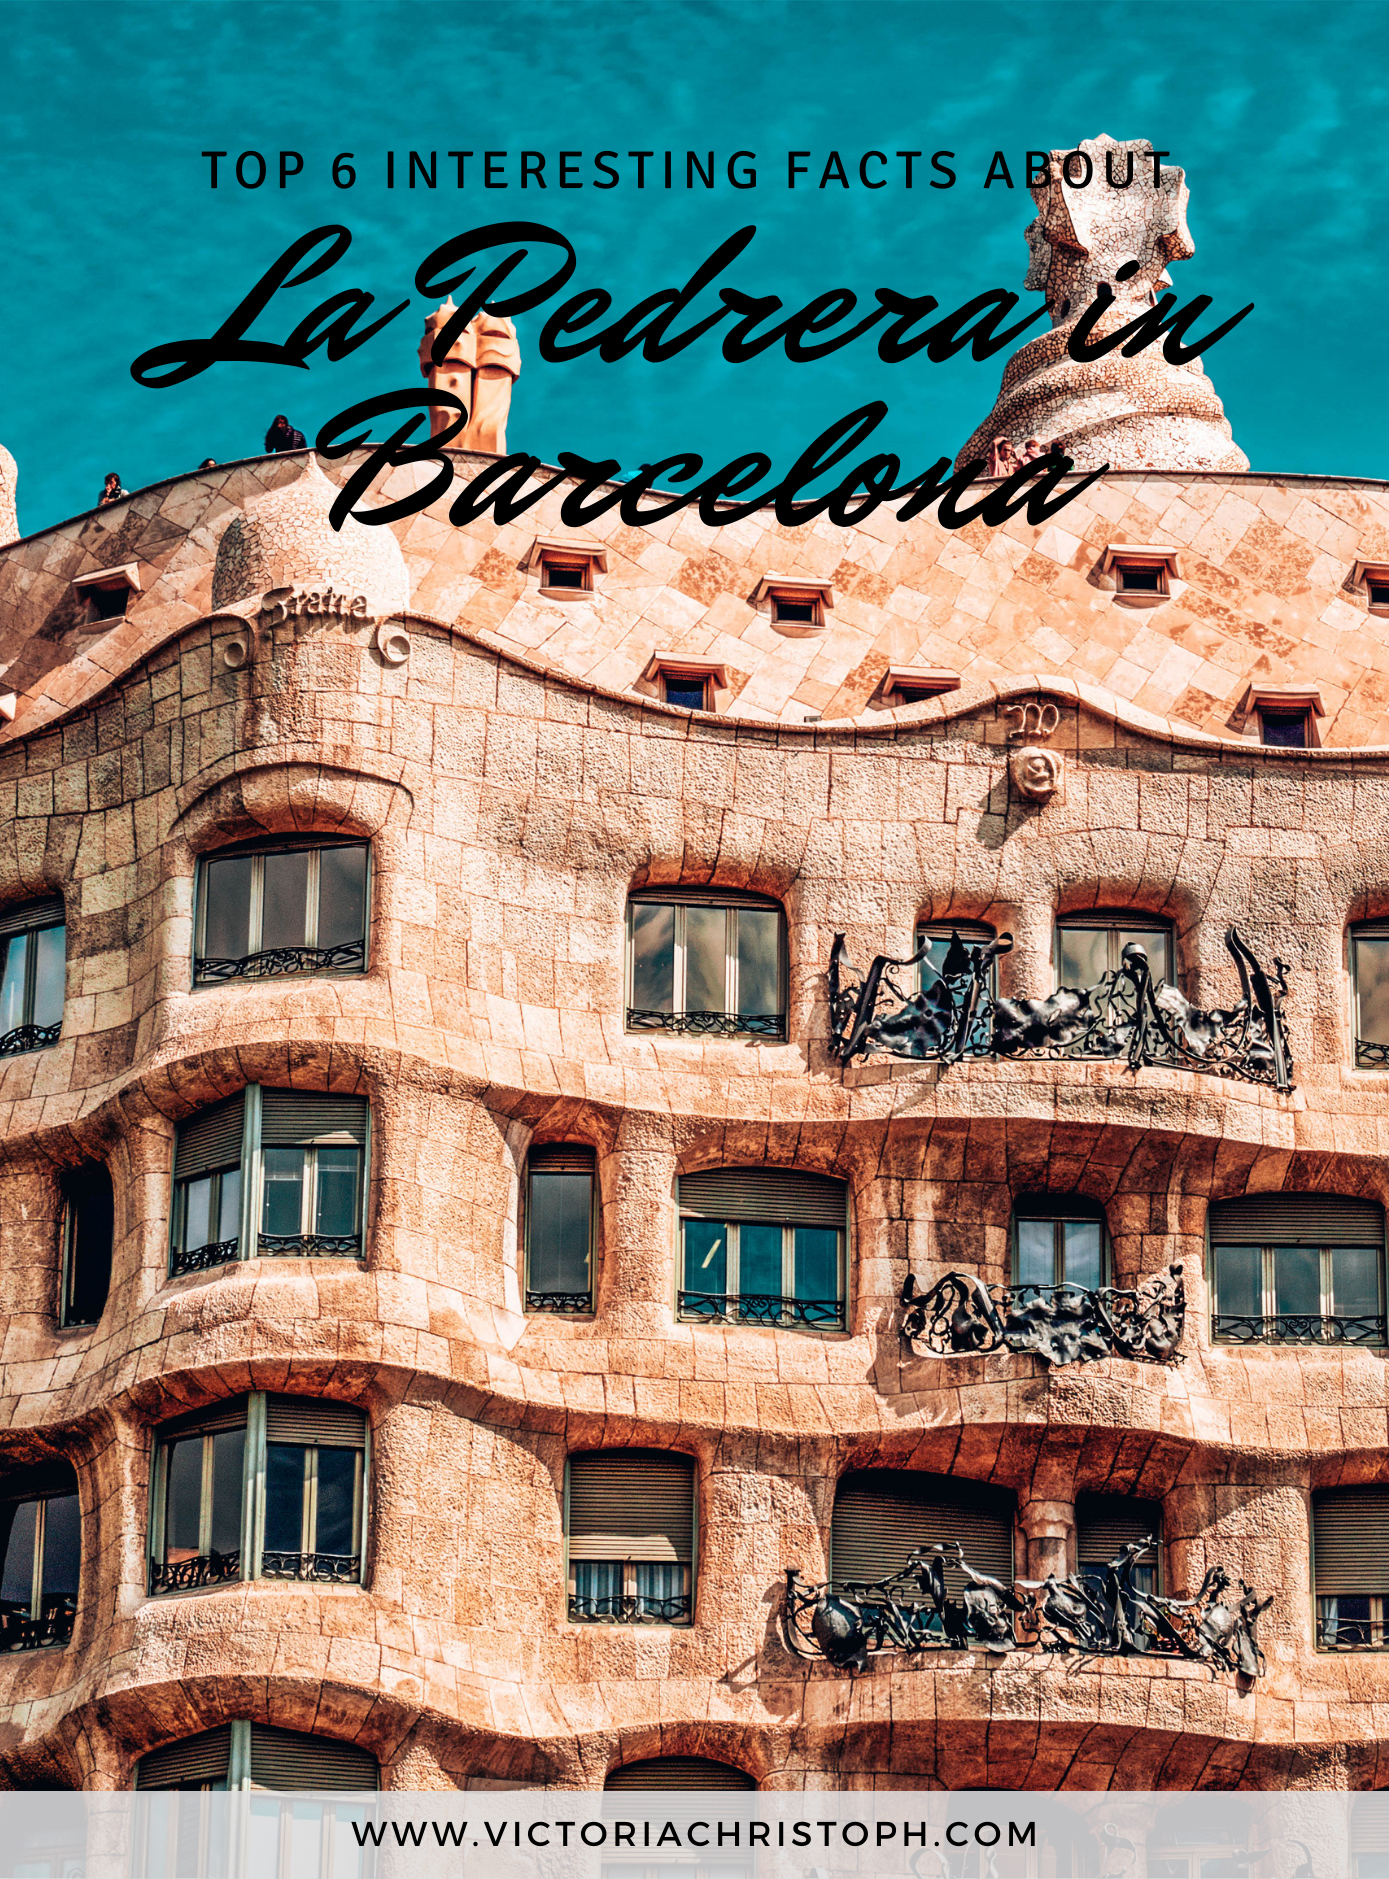 Top 6 Interesting facts about La Pedrera in Barcelona